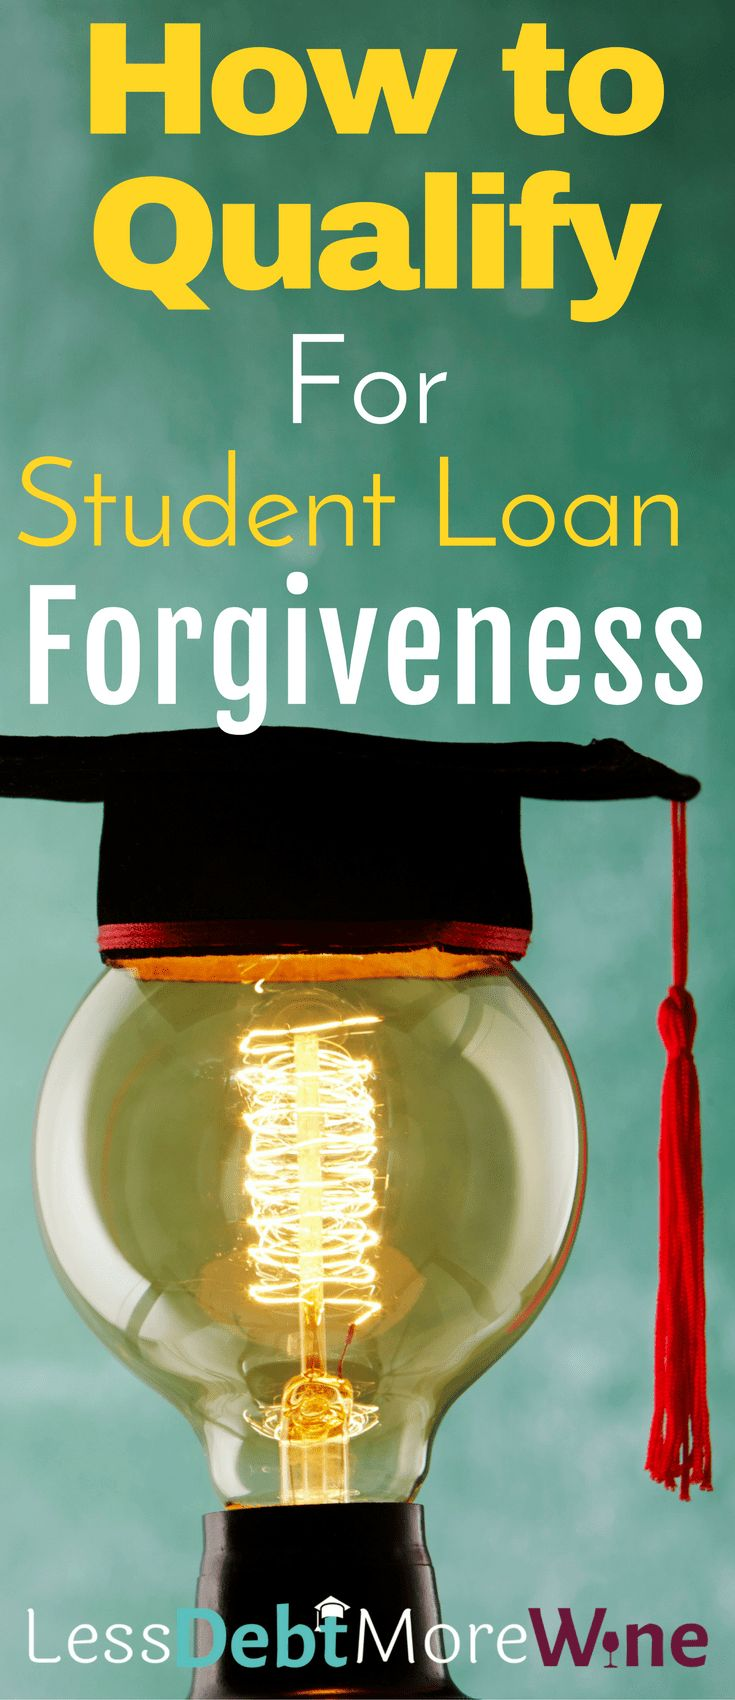 no forgiveness for student loan debt Gao criticizes accounting methods for determining the cost of student loan forgiveness.